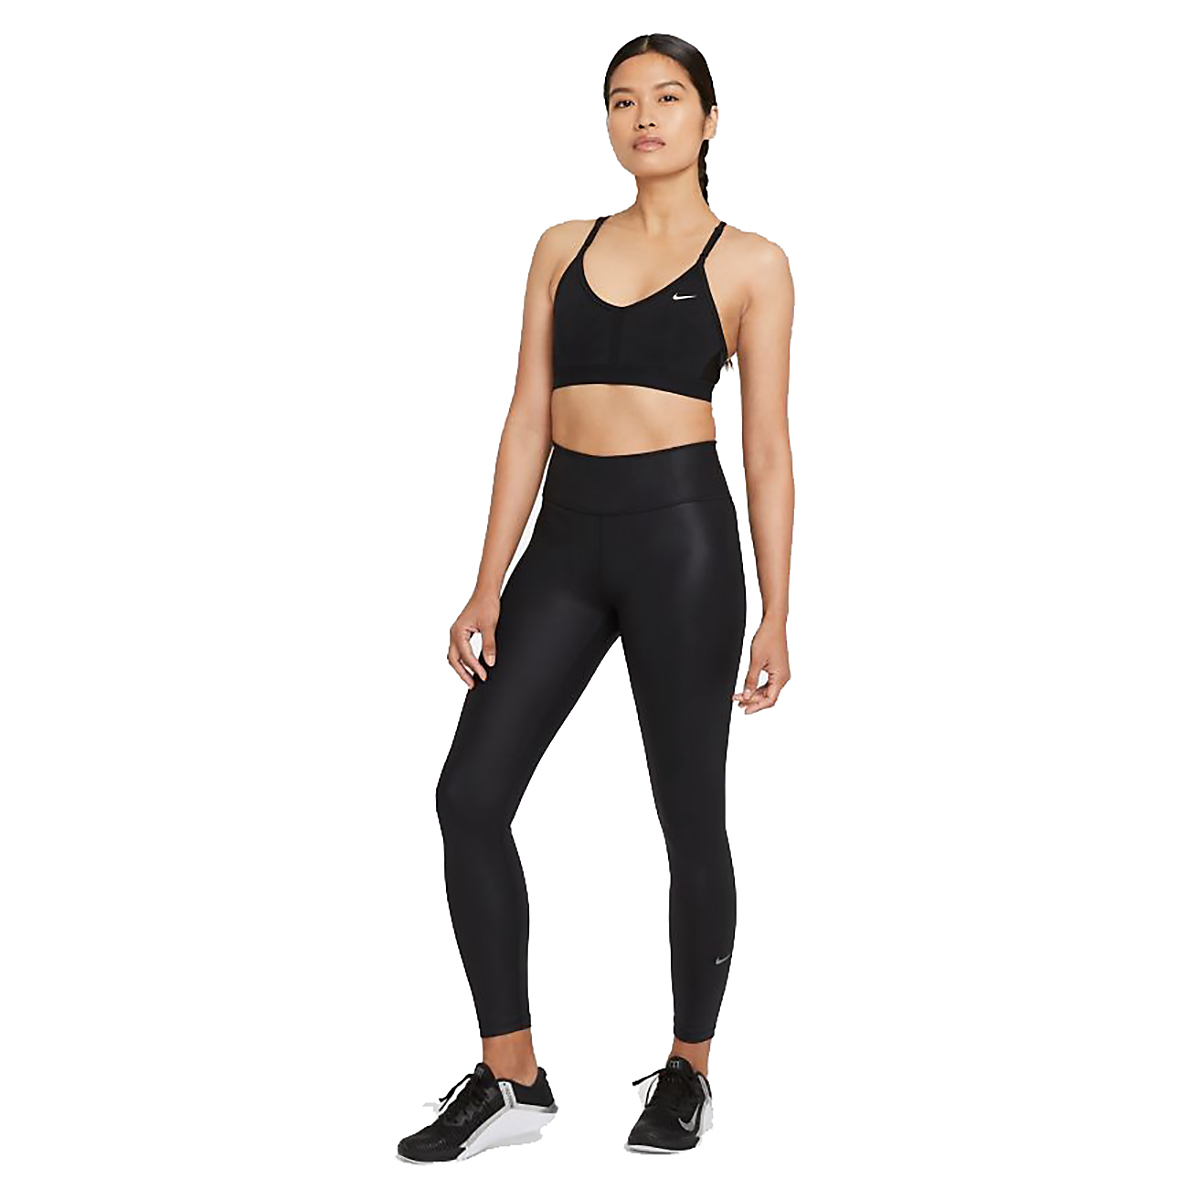 Women's Nike Dri-FIT Indy Light-Support Padded V-Neck Sports Bra - Color: Black/Black/Black/White - Size: XS, Black/Black/Black/White, large, image 3